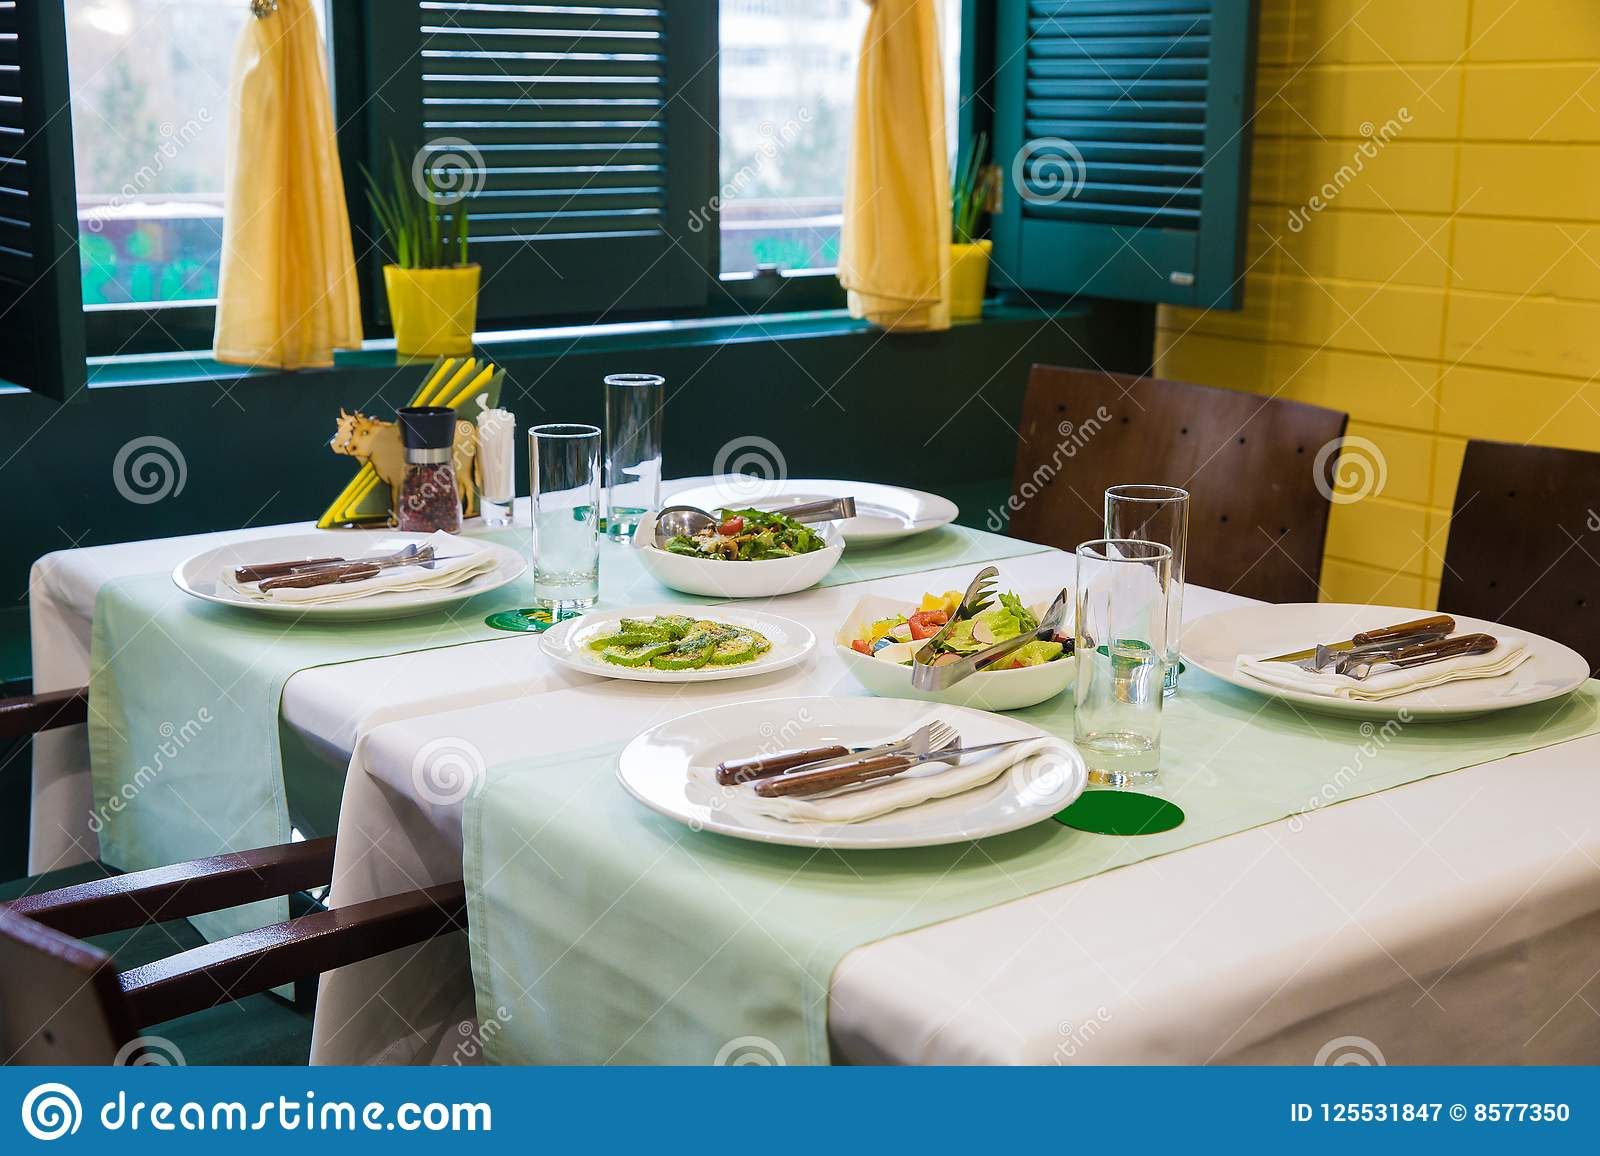 Cafe Table Setting Yellow And Green Color Stock Image Image Of Wedding Served 125531847